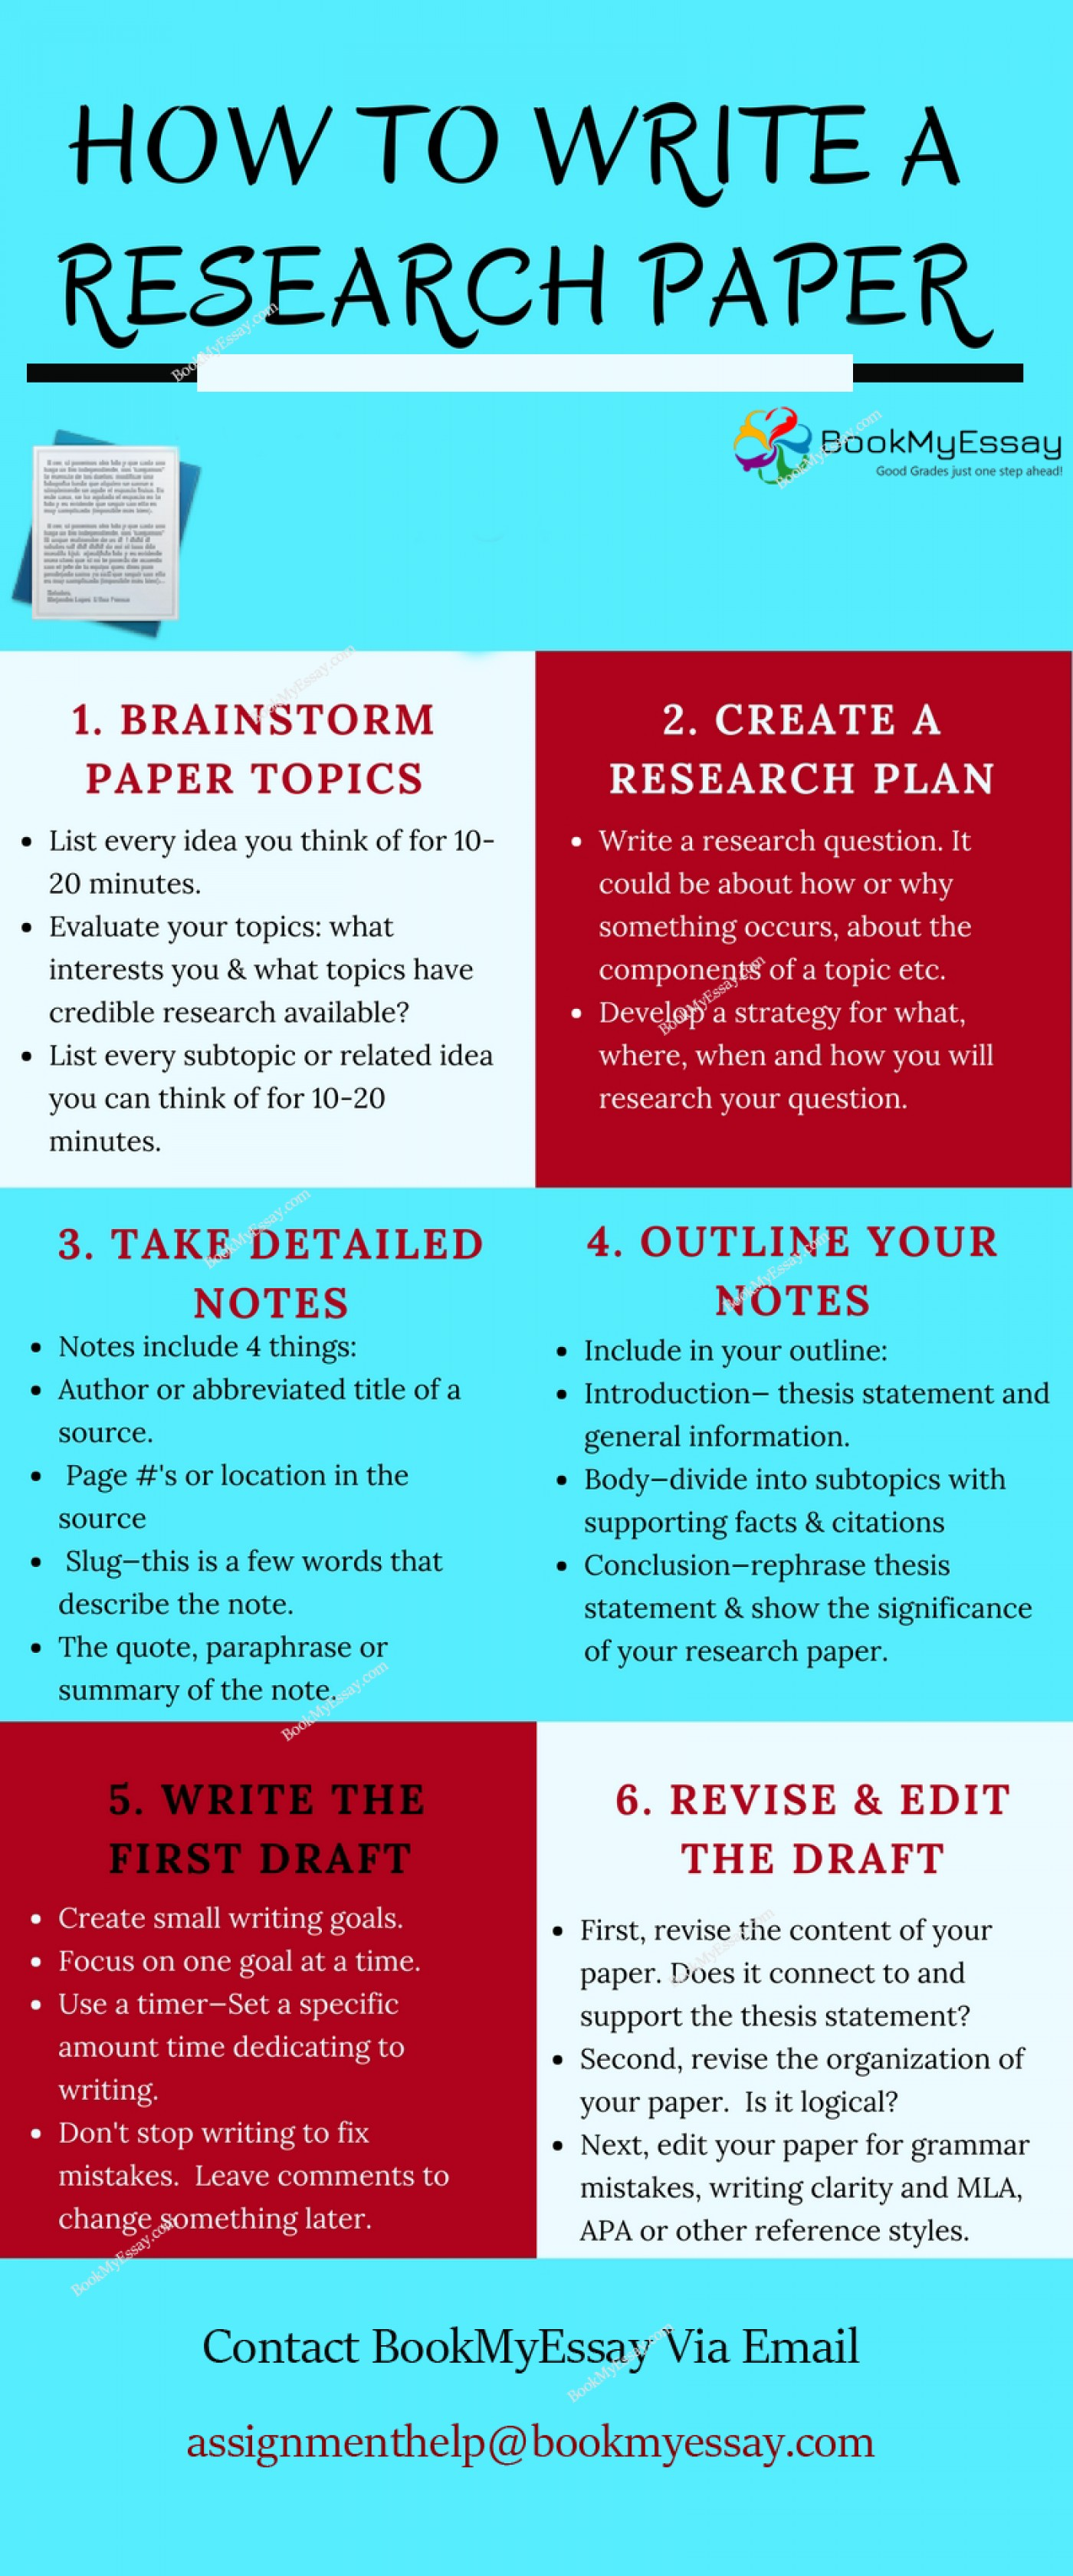 003 Research Paper Writing Service Dreaded Services In India Best Academic Online 1400